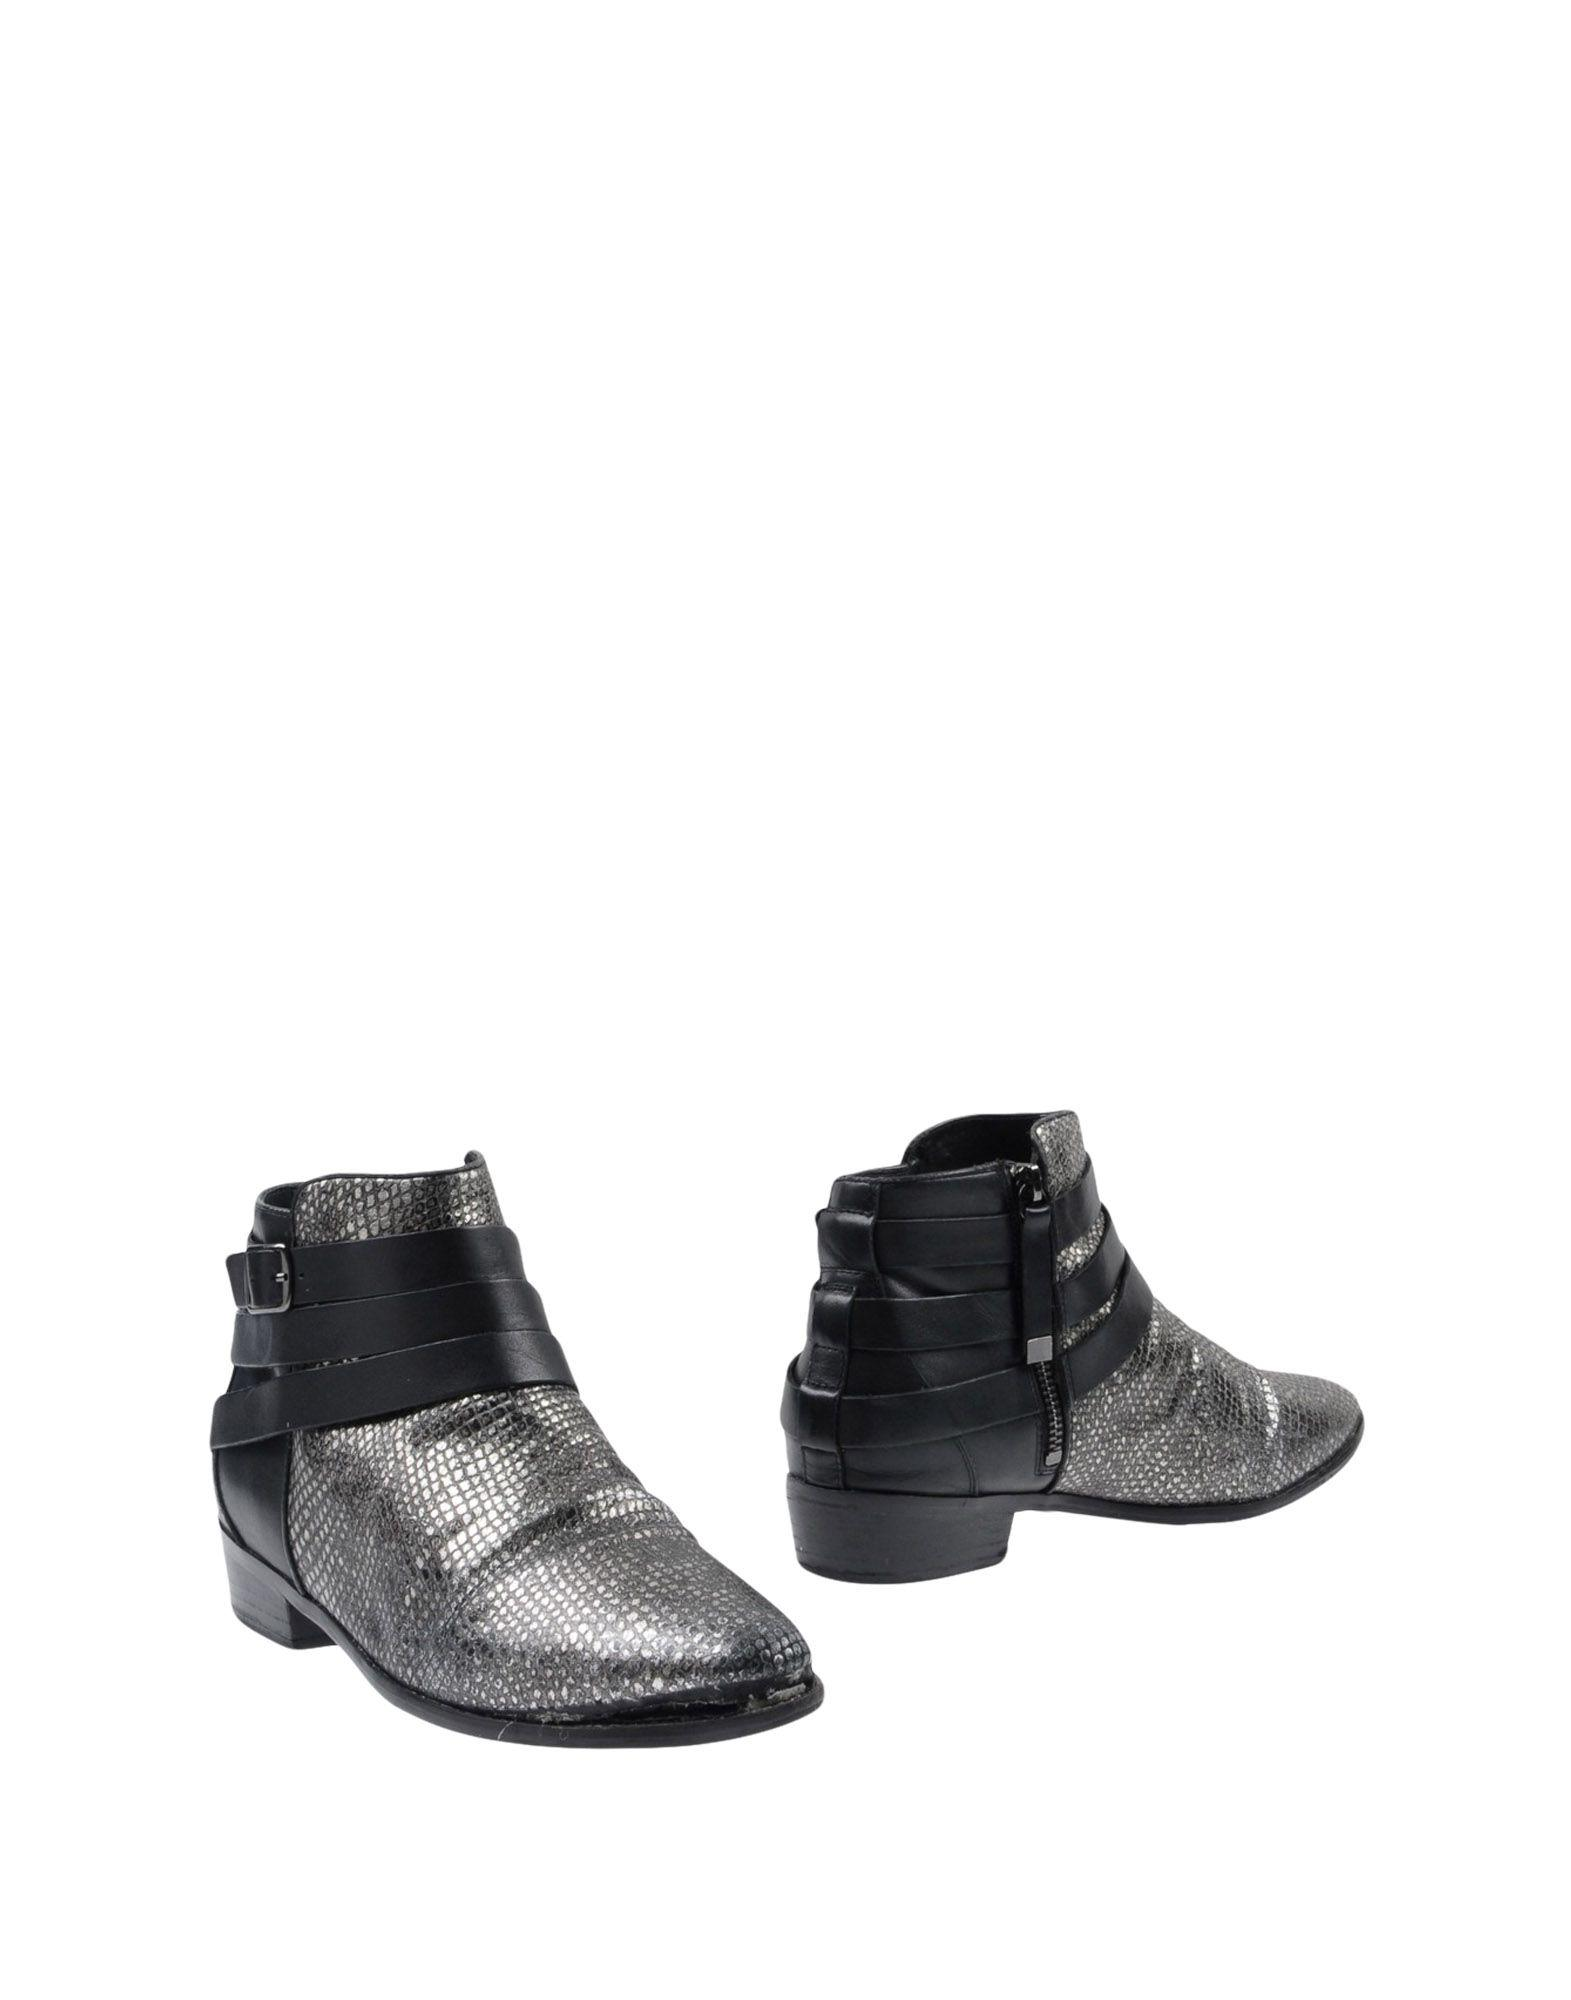 Yosi Samra Ankle Boots In Grey